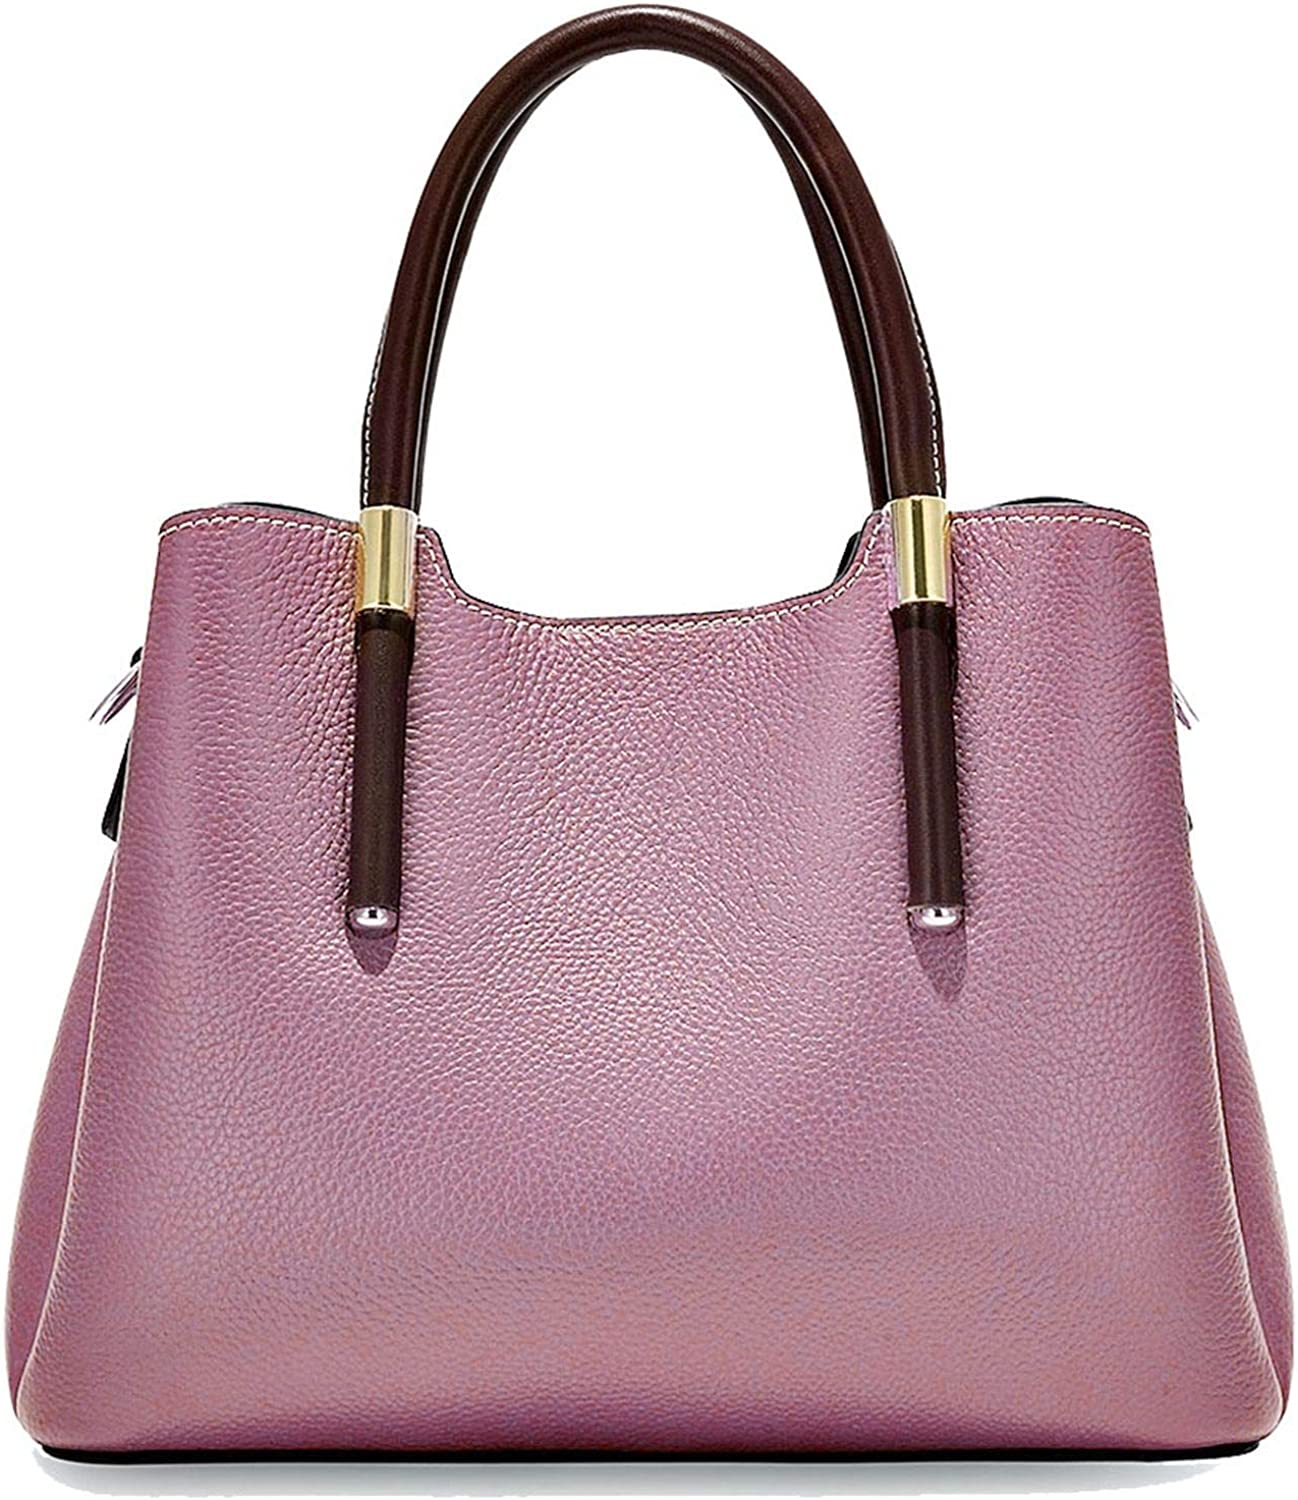 In stock More Pretty Colors Handbag Leather Tote Price reduction Crossbody Lady Ta Casual